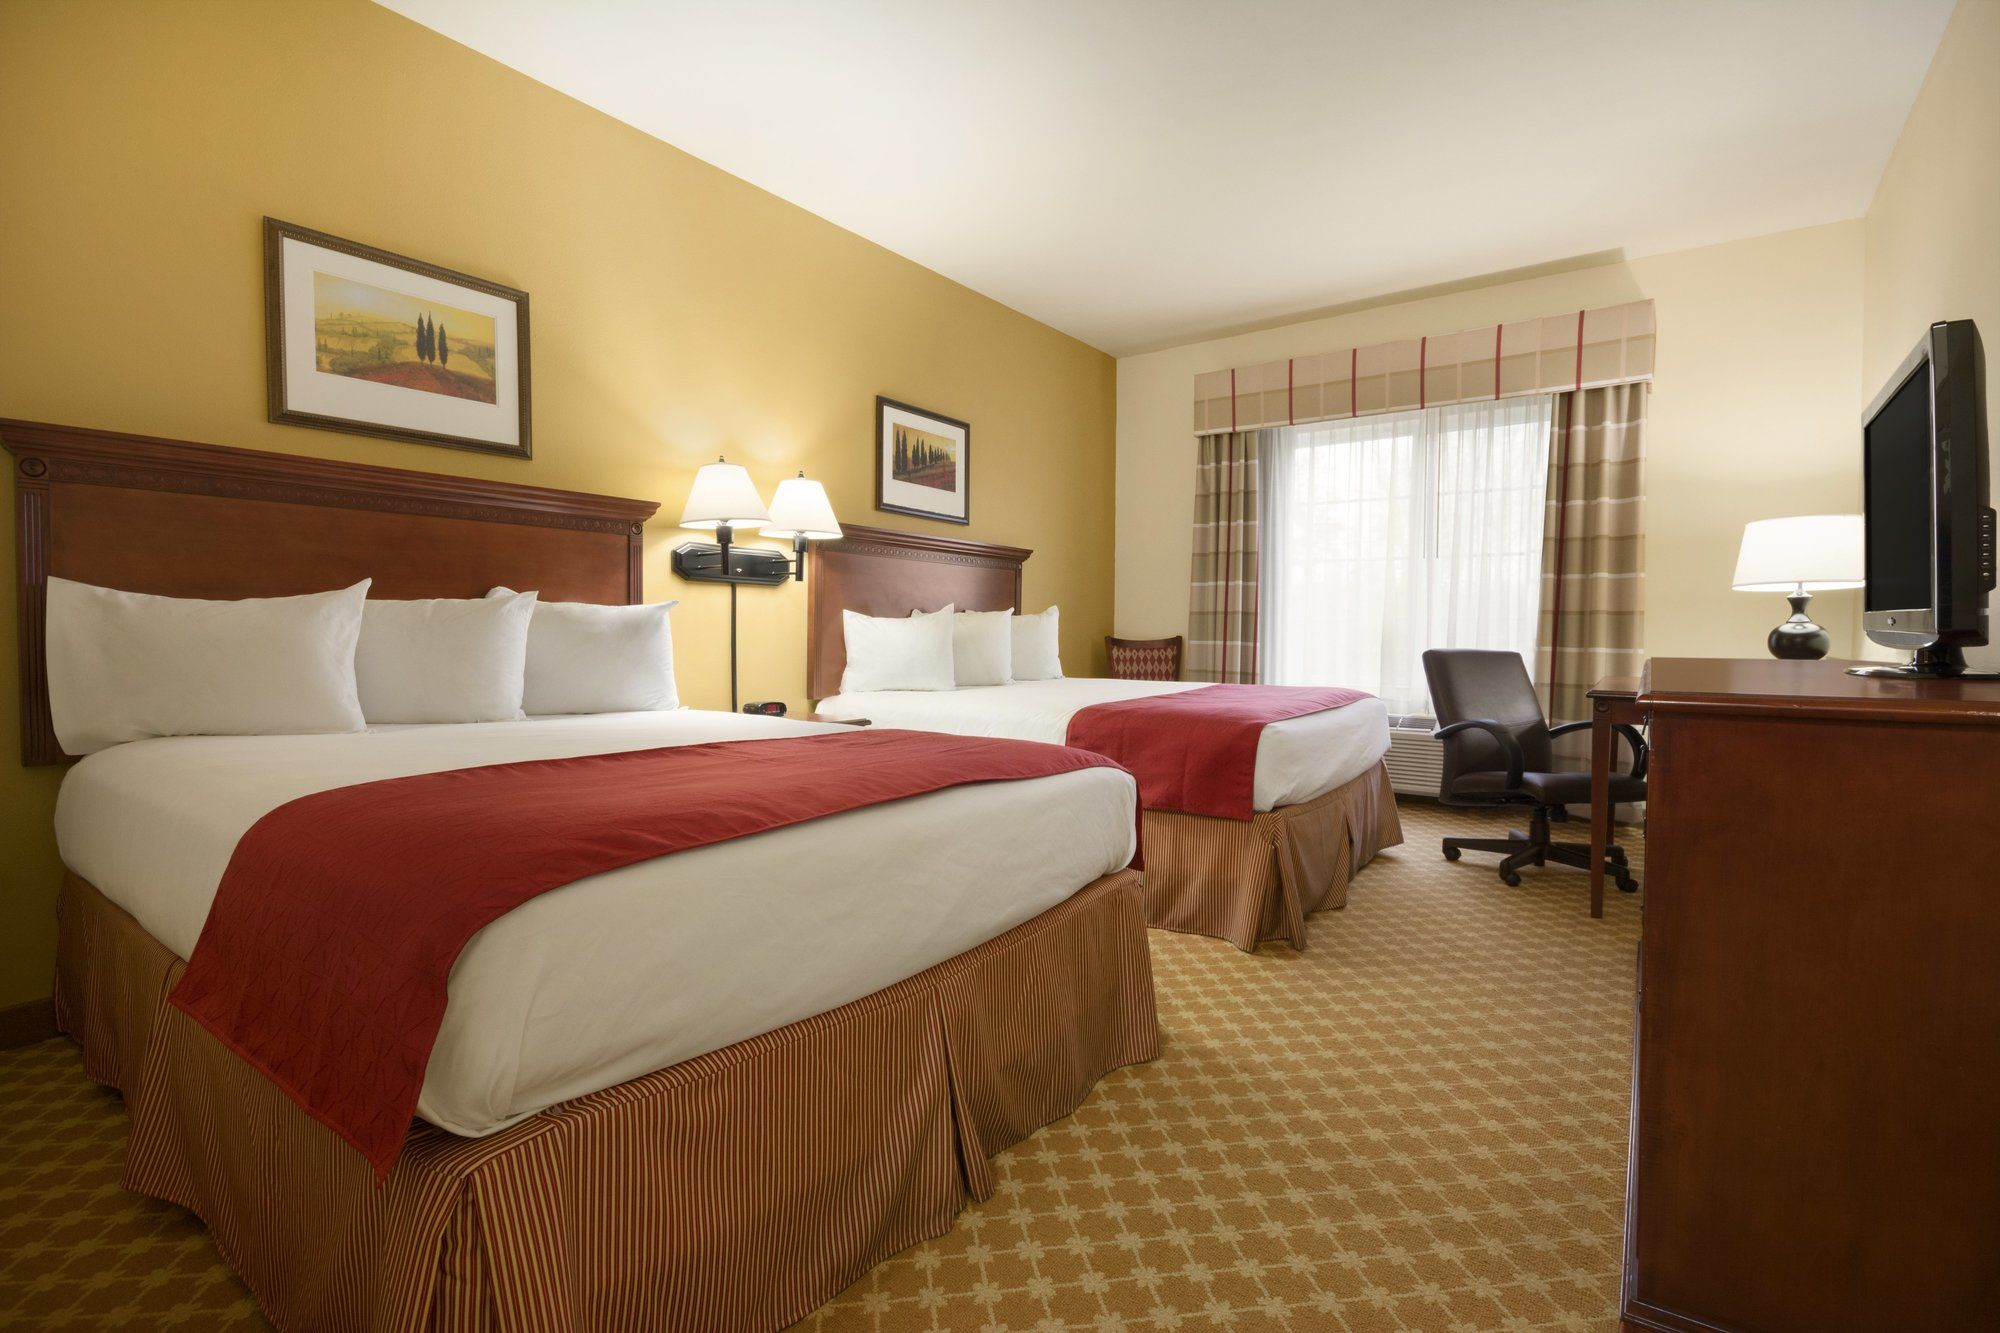 Country Inn & Suites in Archdale, NC